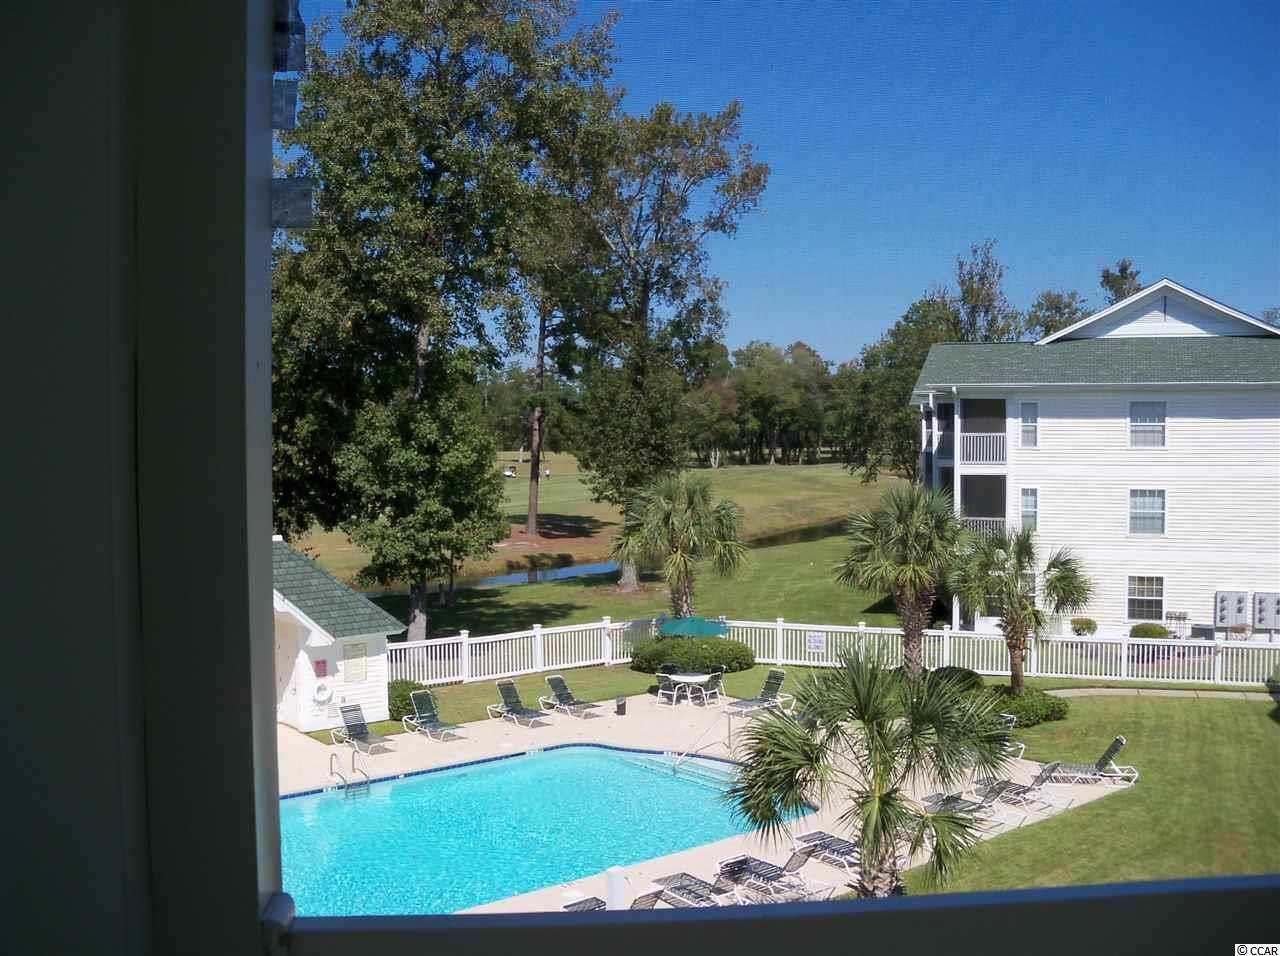 Contact your real estate agent to view this  RIVER OAKS CONDOS condo for sale